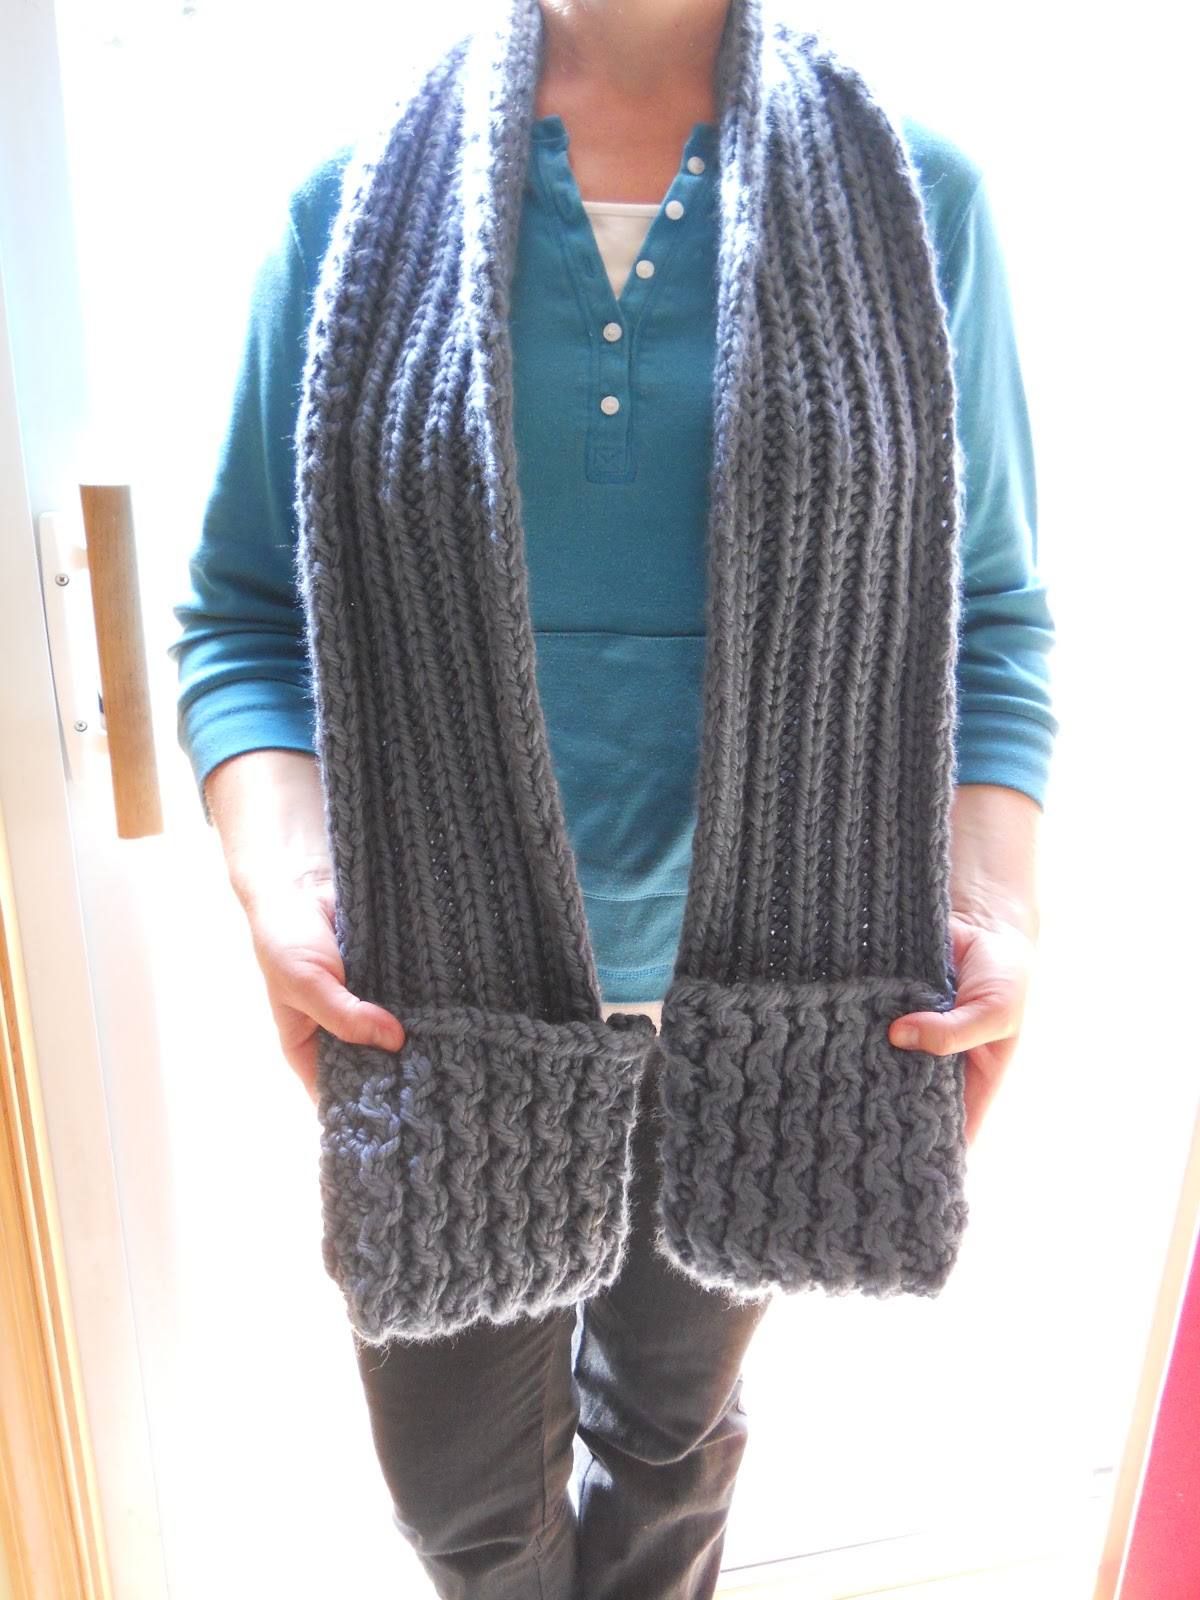 Knitting Patterns Scarves With Pockets : Knitting with Schnapps: Introducing Rings of Love: A Cap Simple Enough for Be...